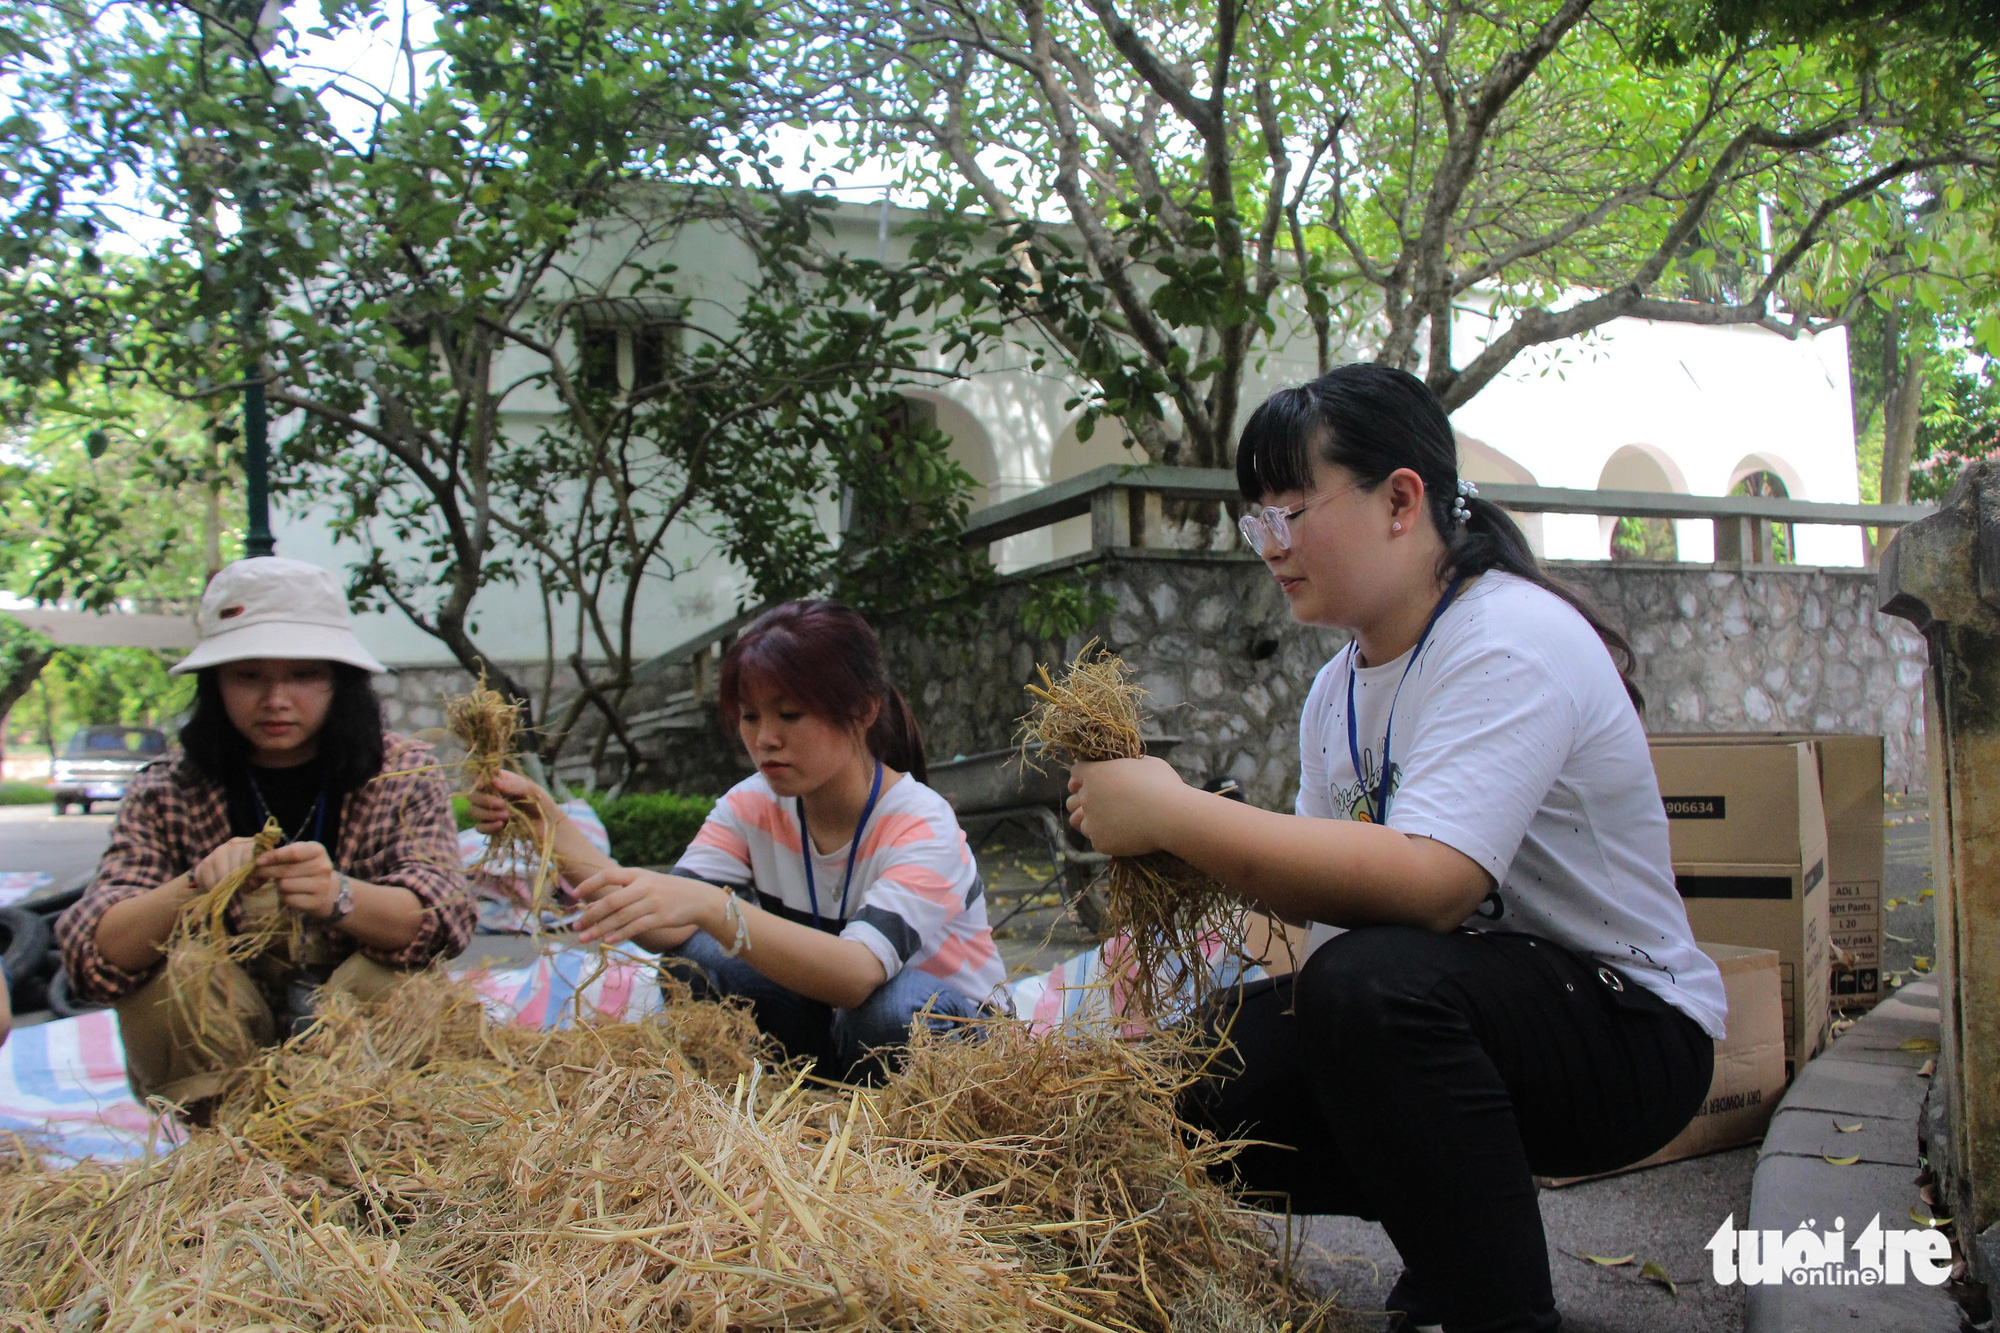 Visitors make toys from straw at the 'Kingdom of Recycled Materials' event in Hanoi, Vietnam, May 31, 2020. Photo: Ha Thanh / Tuoi Tre